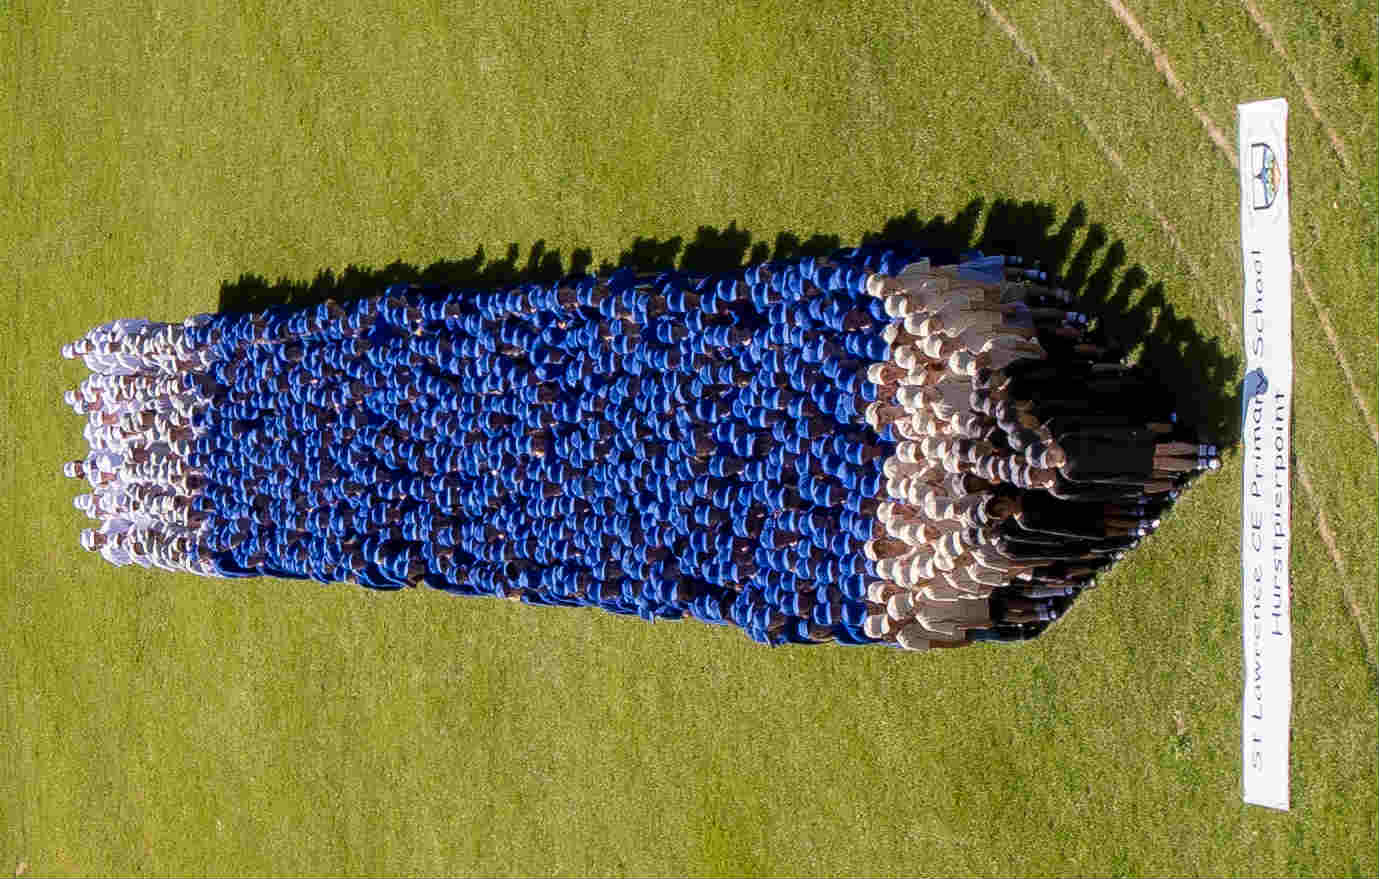 Largest human image of a pencil